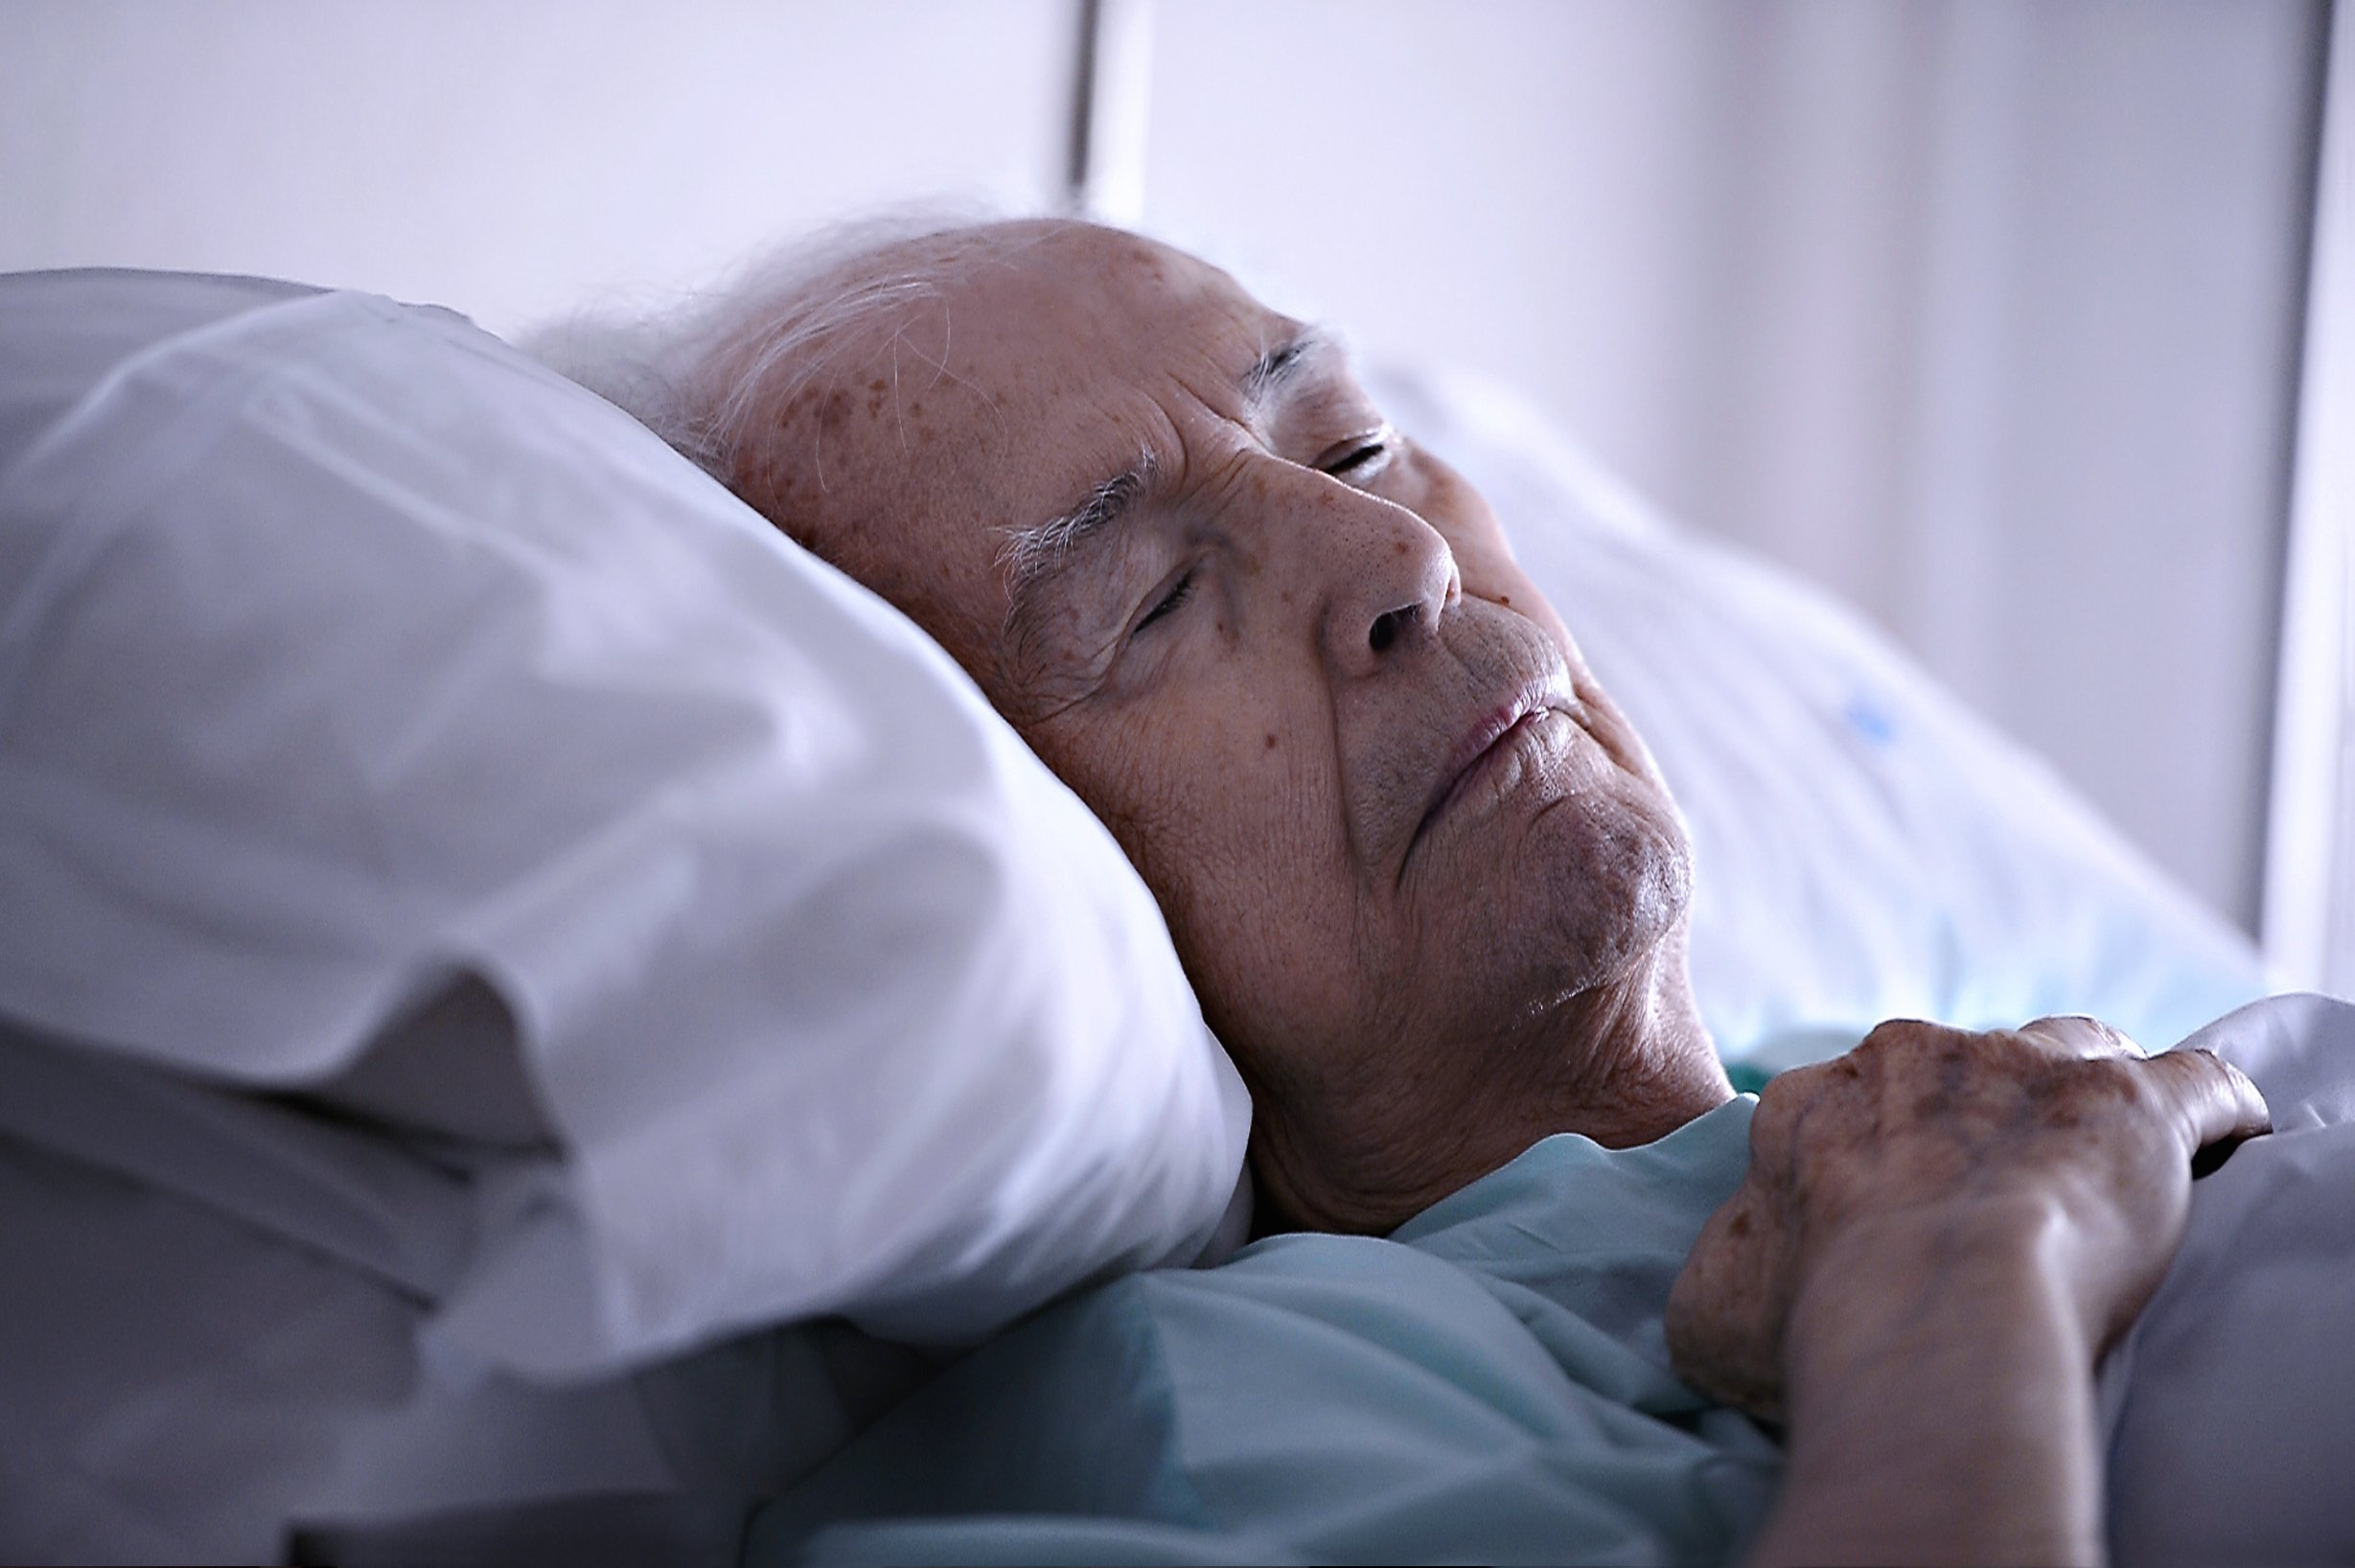 Old man on his death bed   Source: Shutterstock